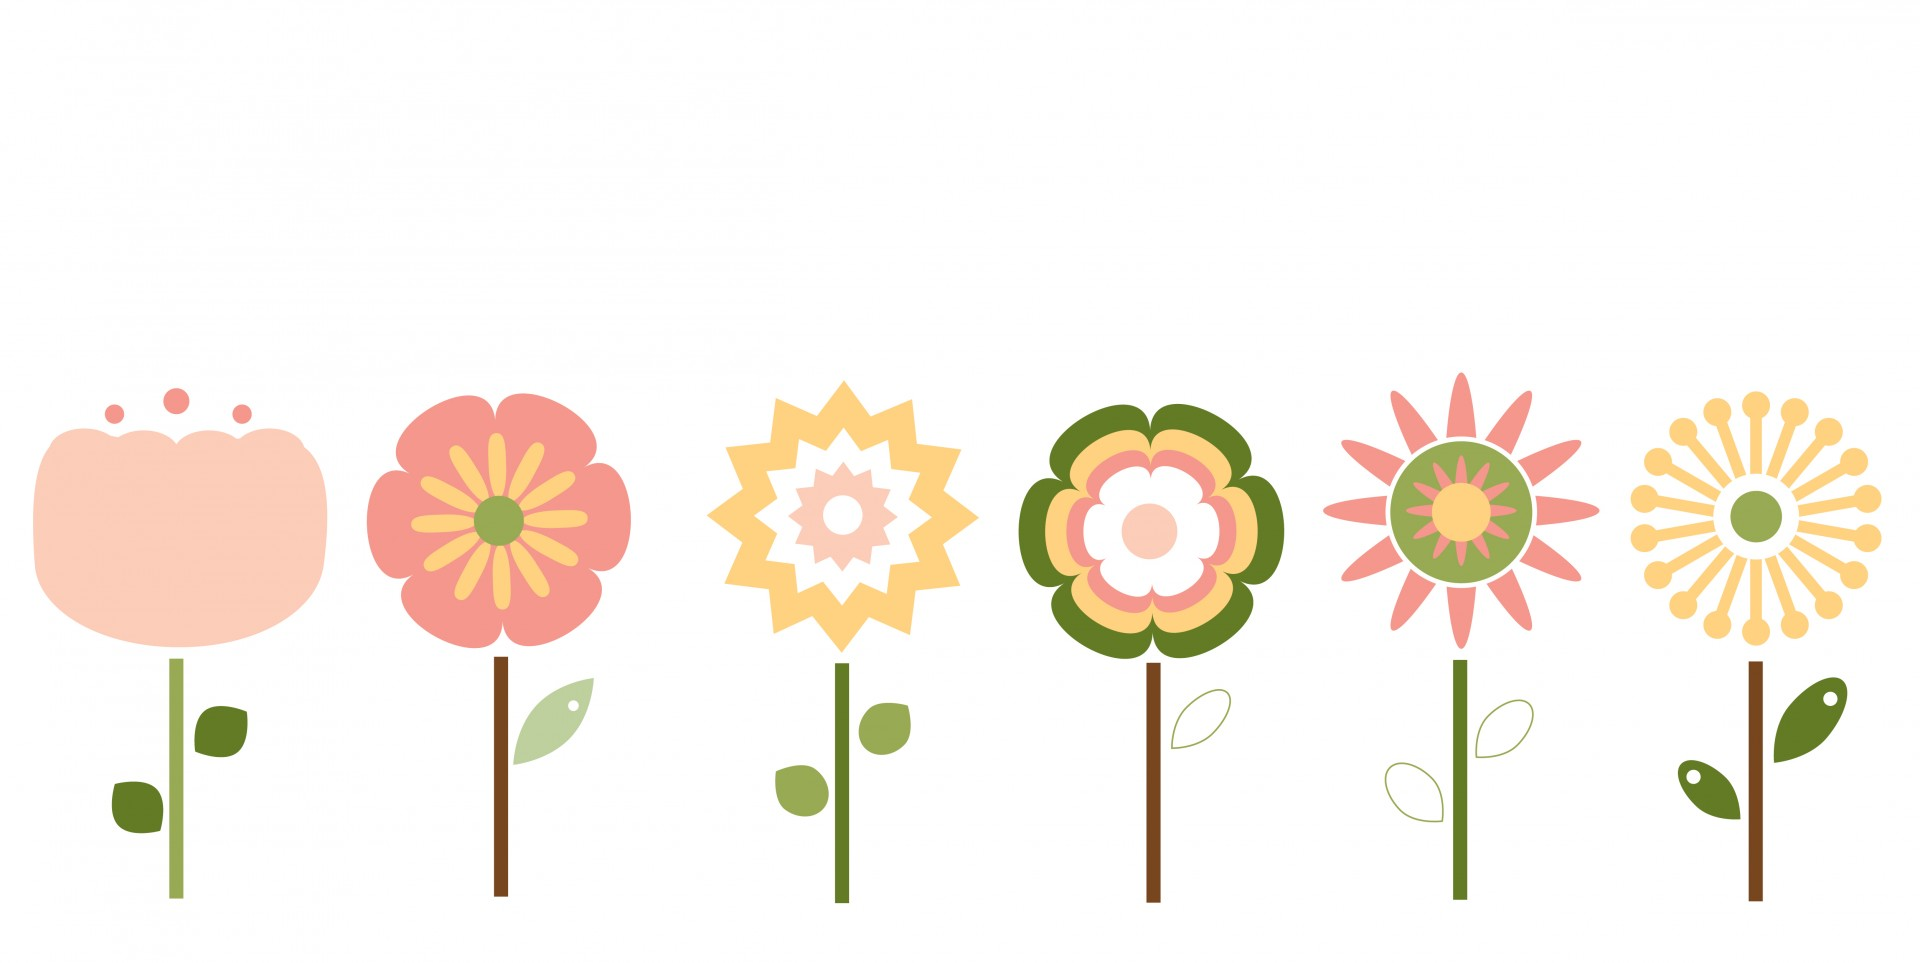 Flowers Clipart Free Stock Photo.